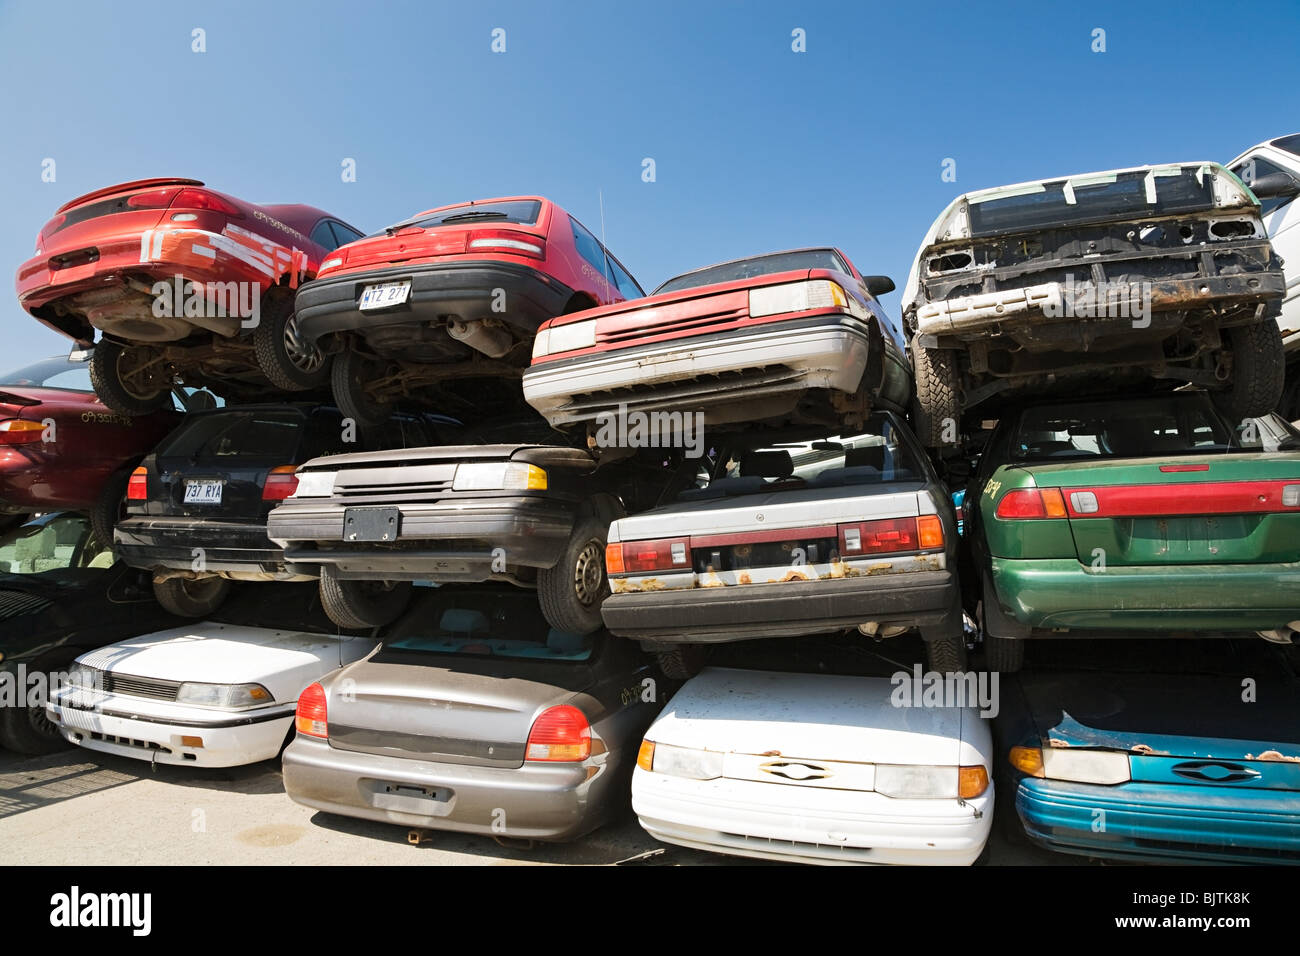 Cars at scrap yard Stock Photo